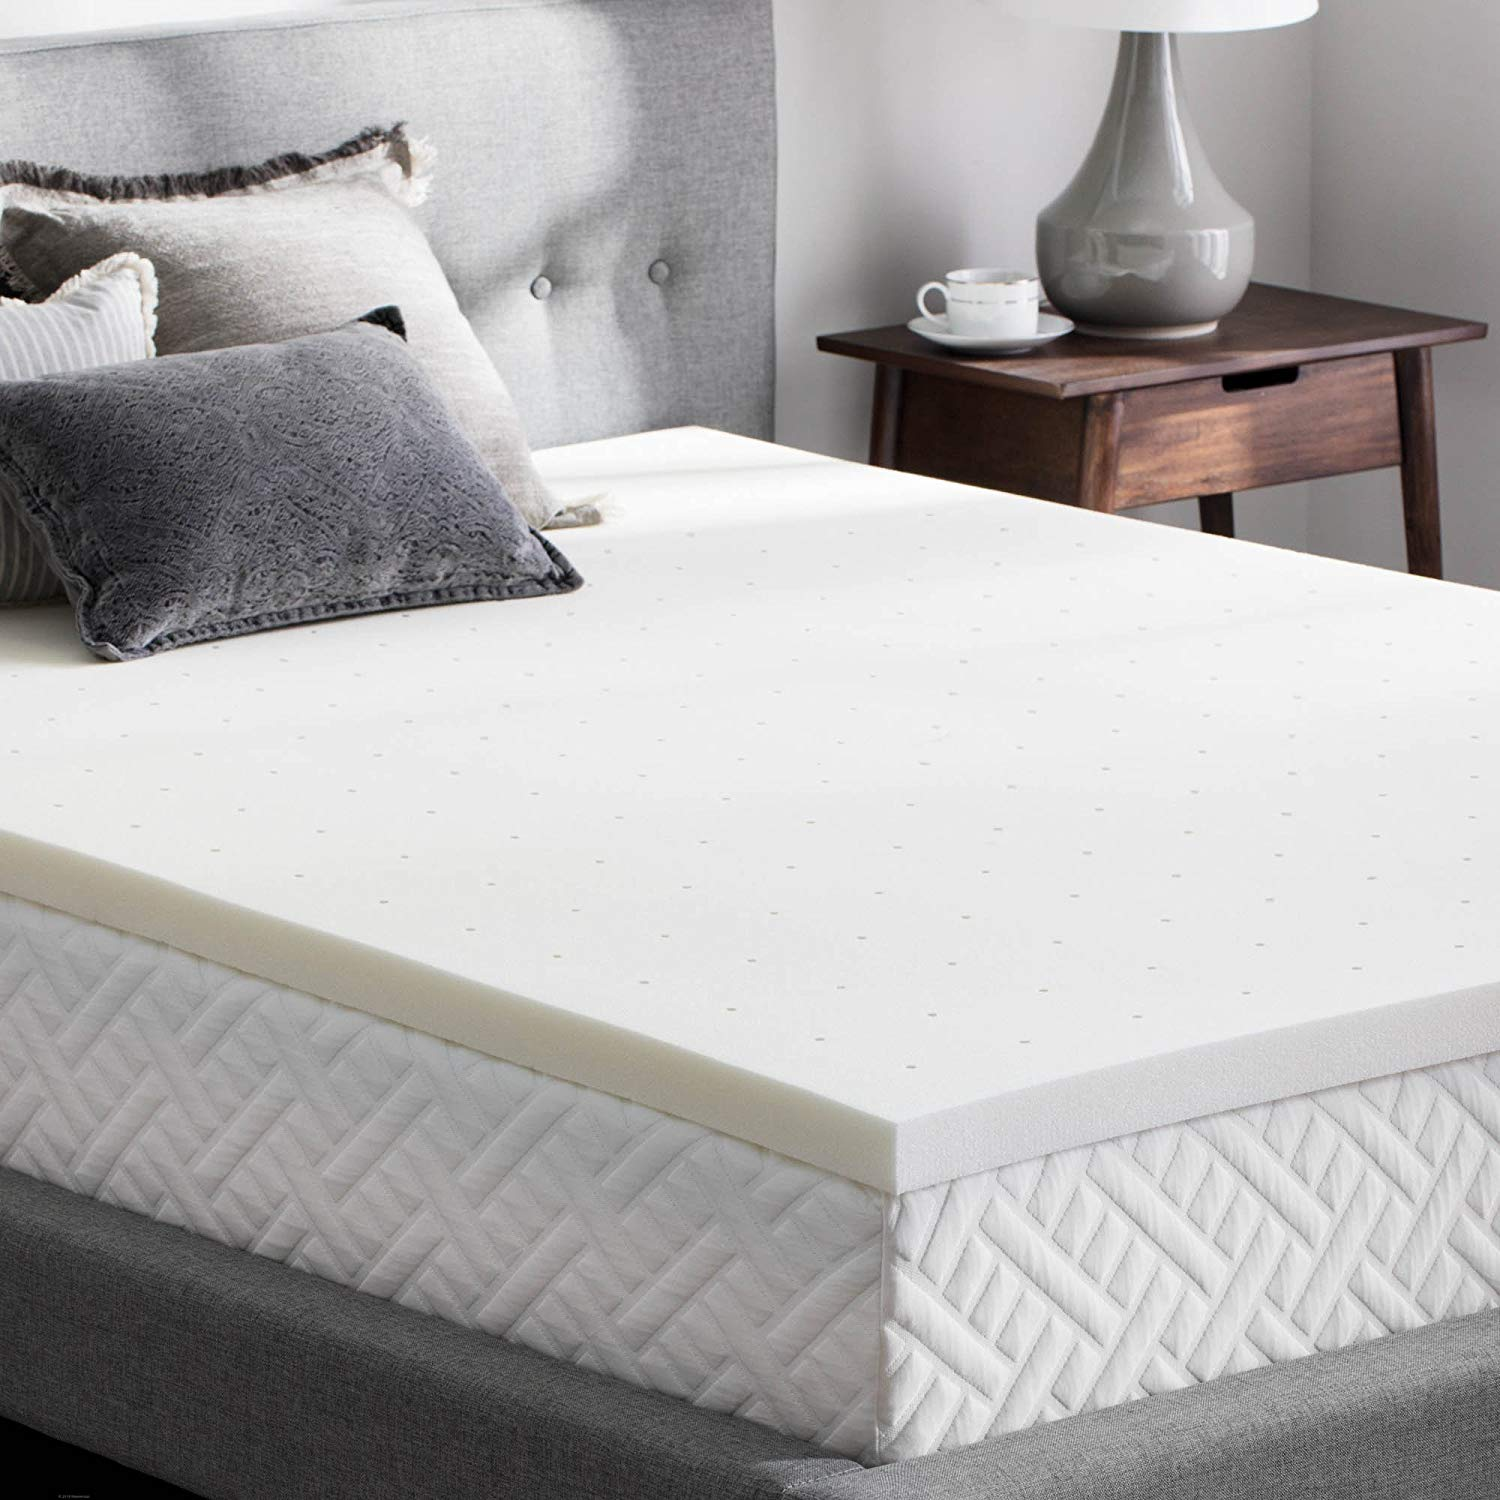 The Best Mattress Topper For Back Pain Buying Guide For 2020